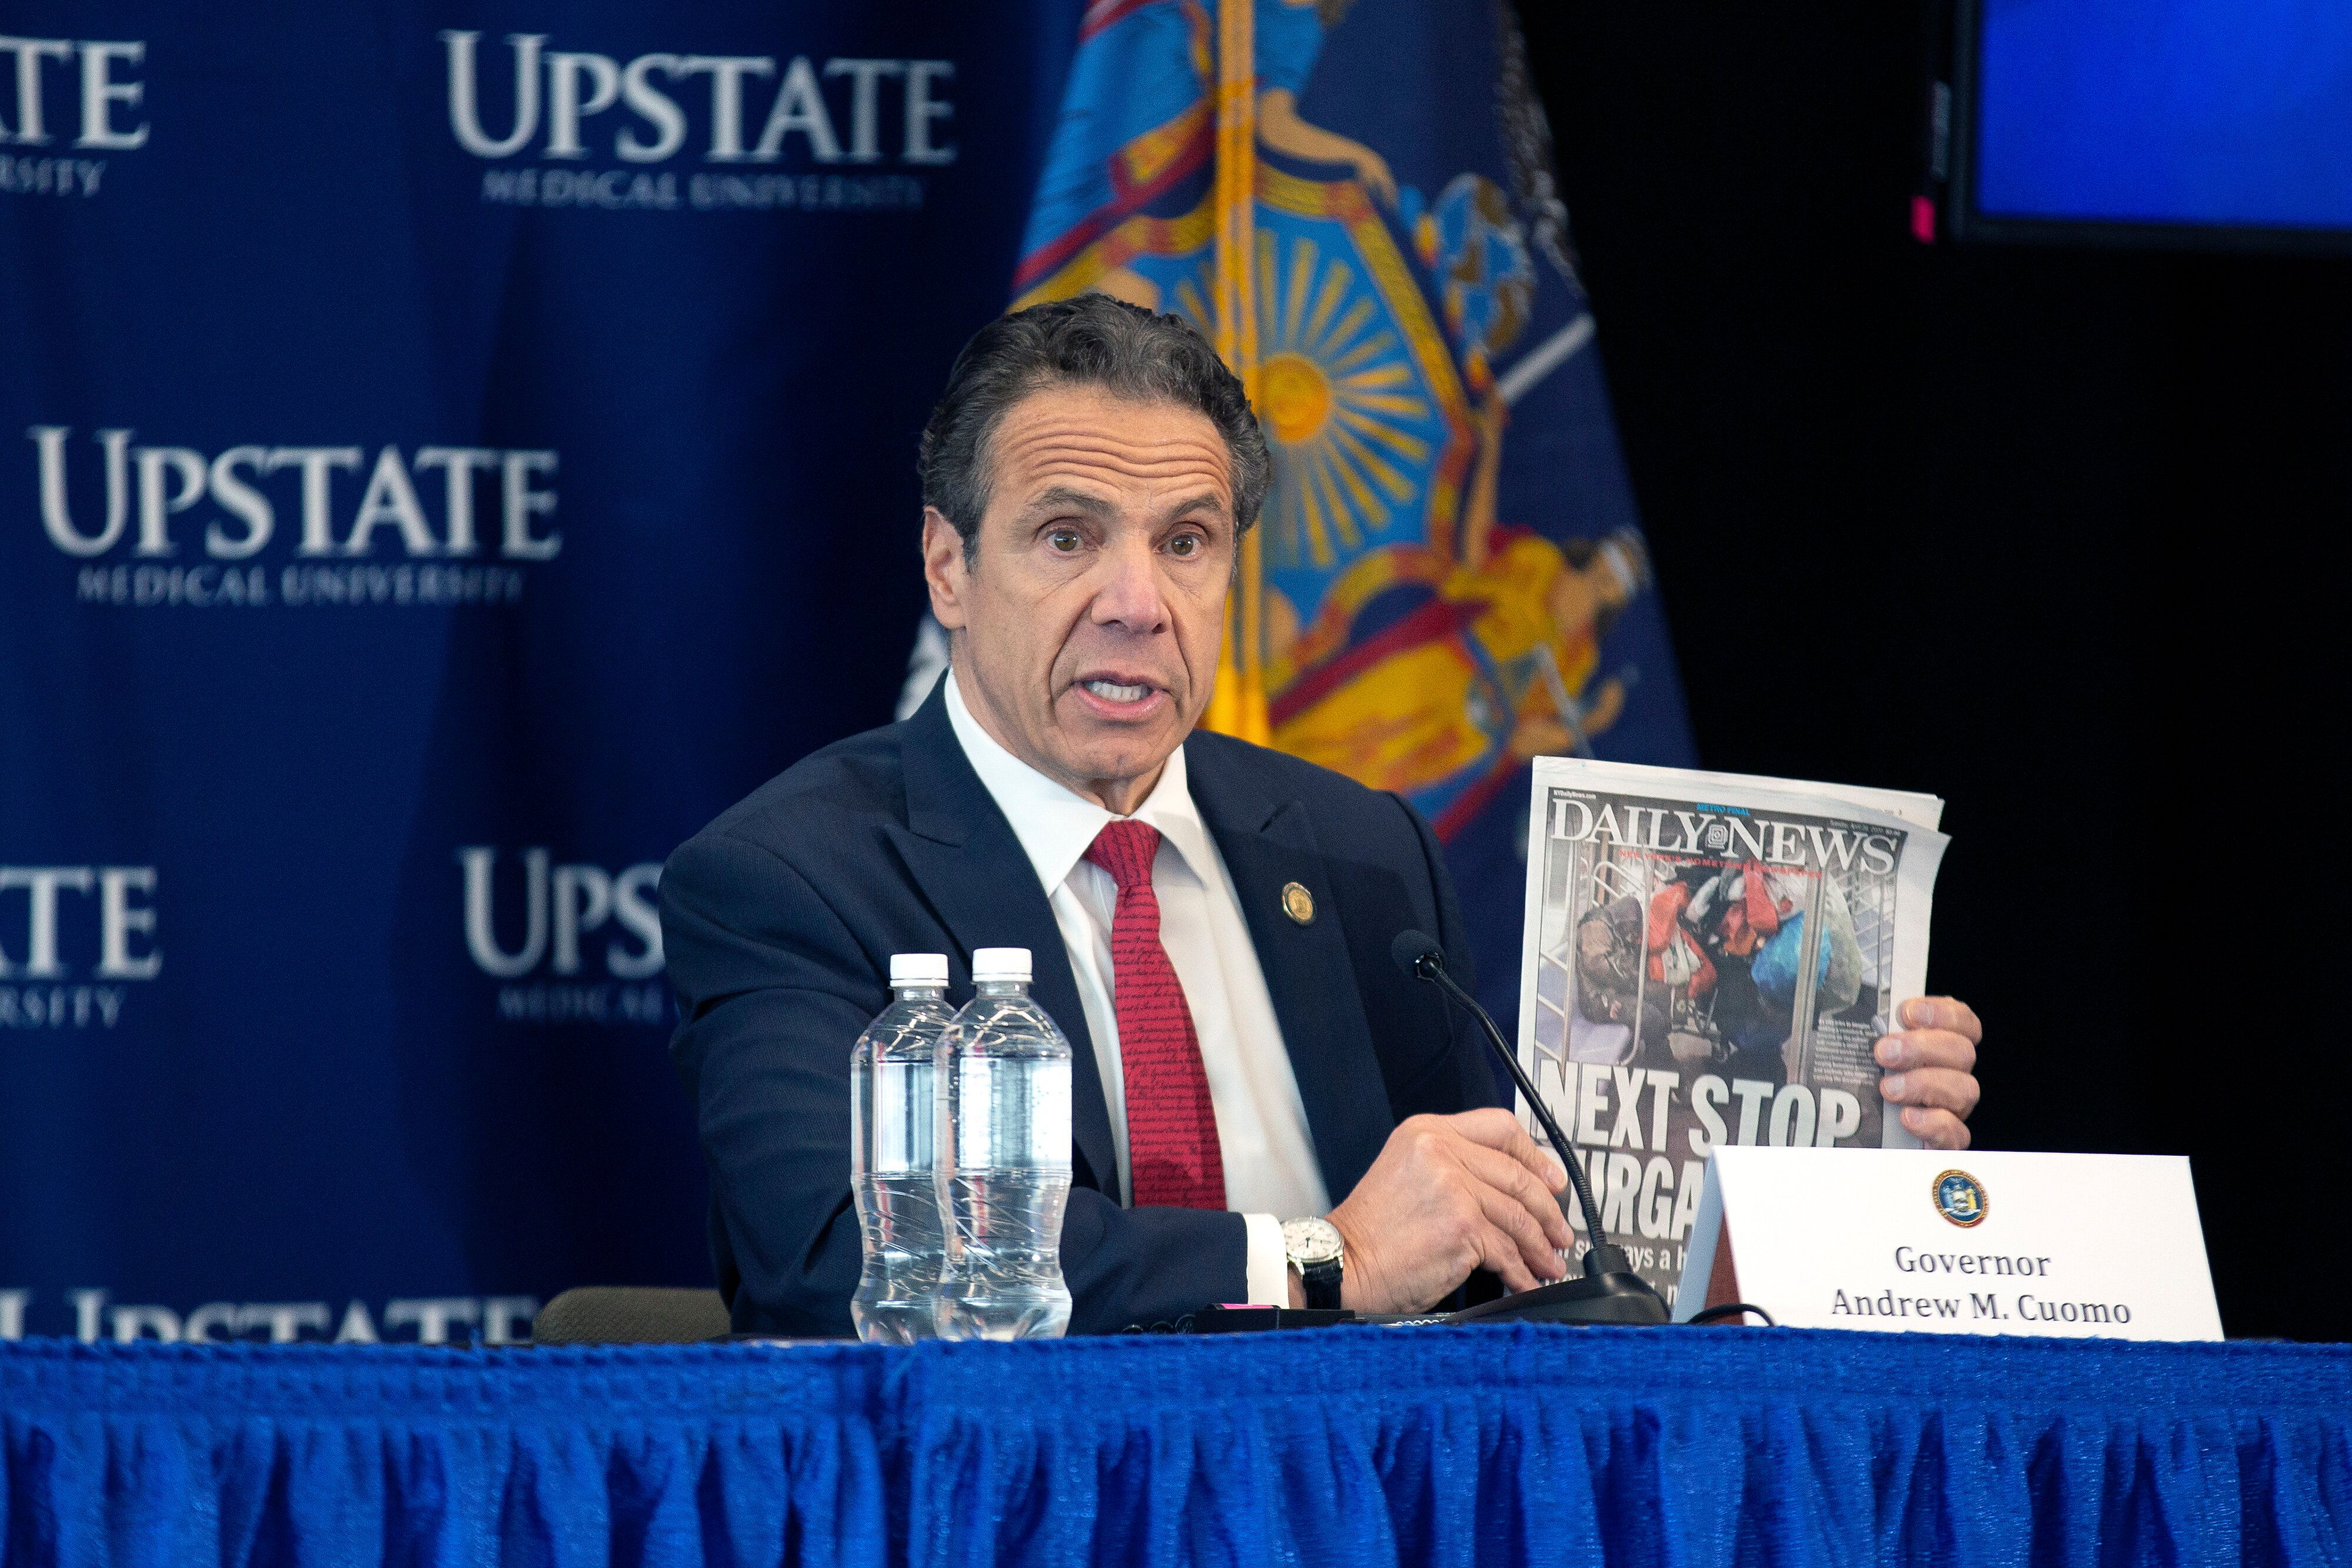 New York Gov. Andrew Cuomo holding up an article about problems with homeless people riding the subway.